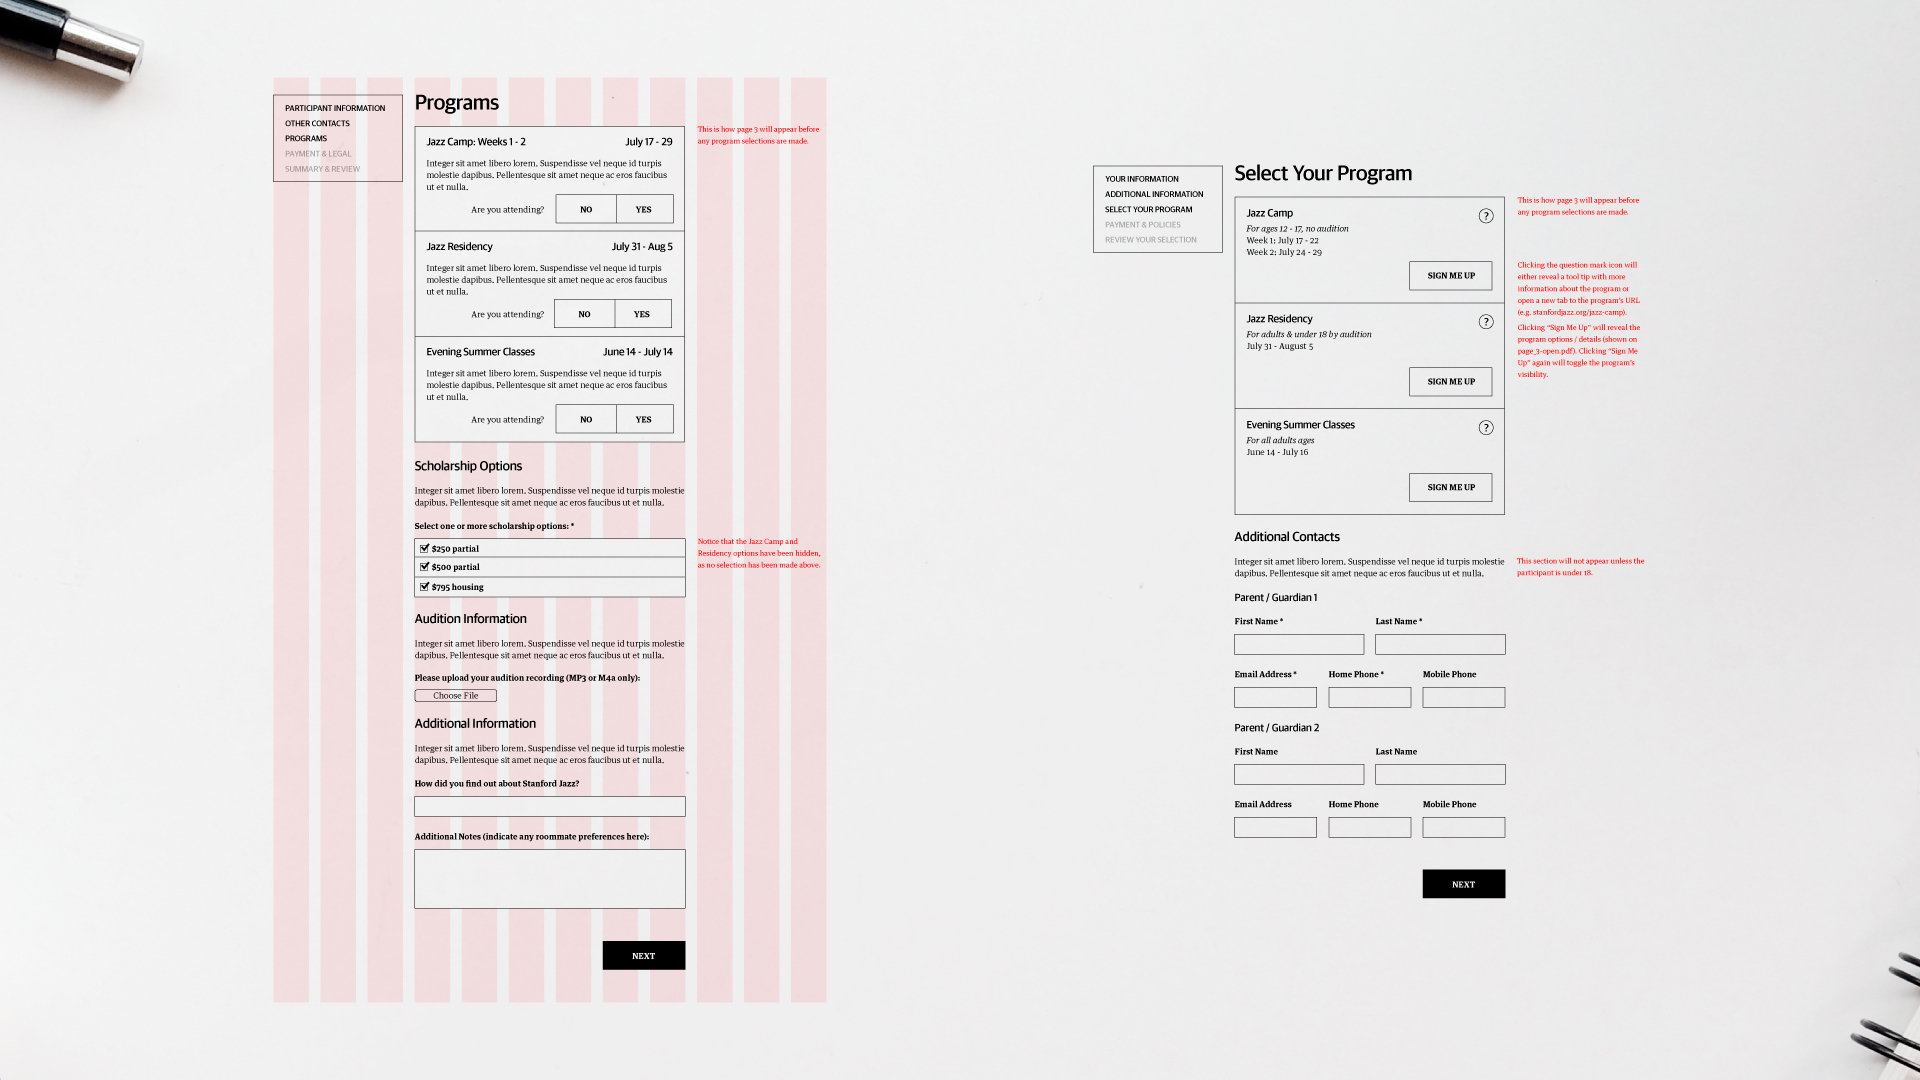 Wireframes for Displaying Programs (a Rejected Option on the Left, the Approved Option on the Right)